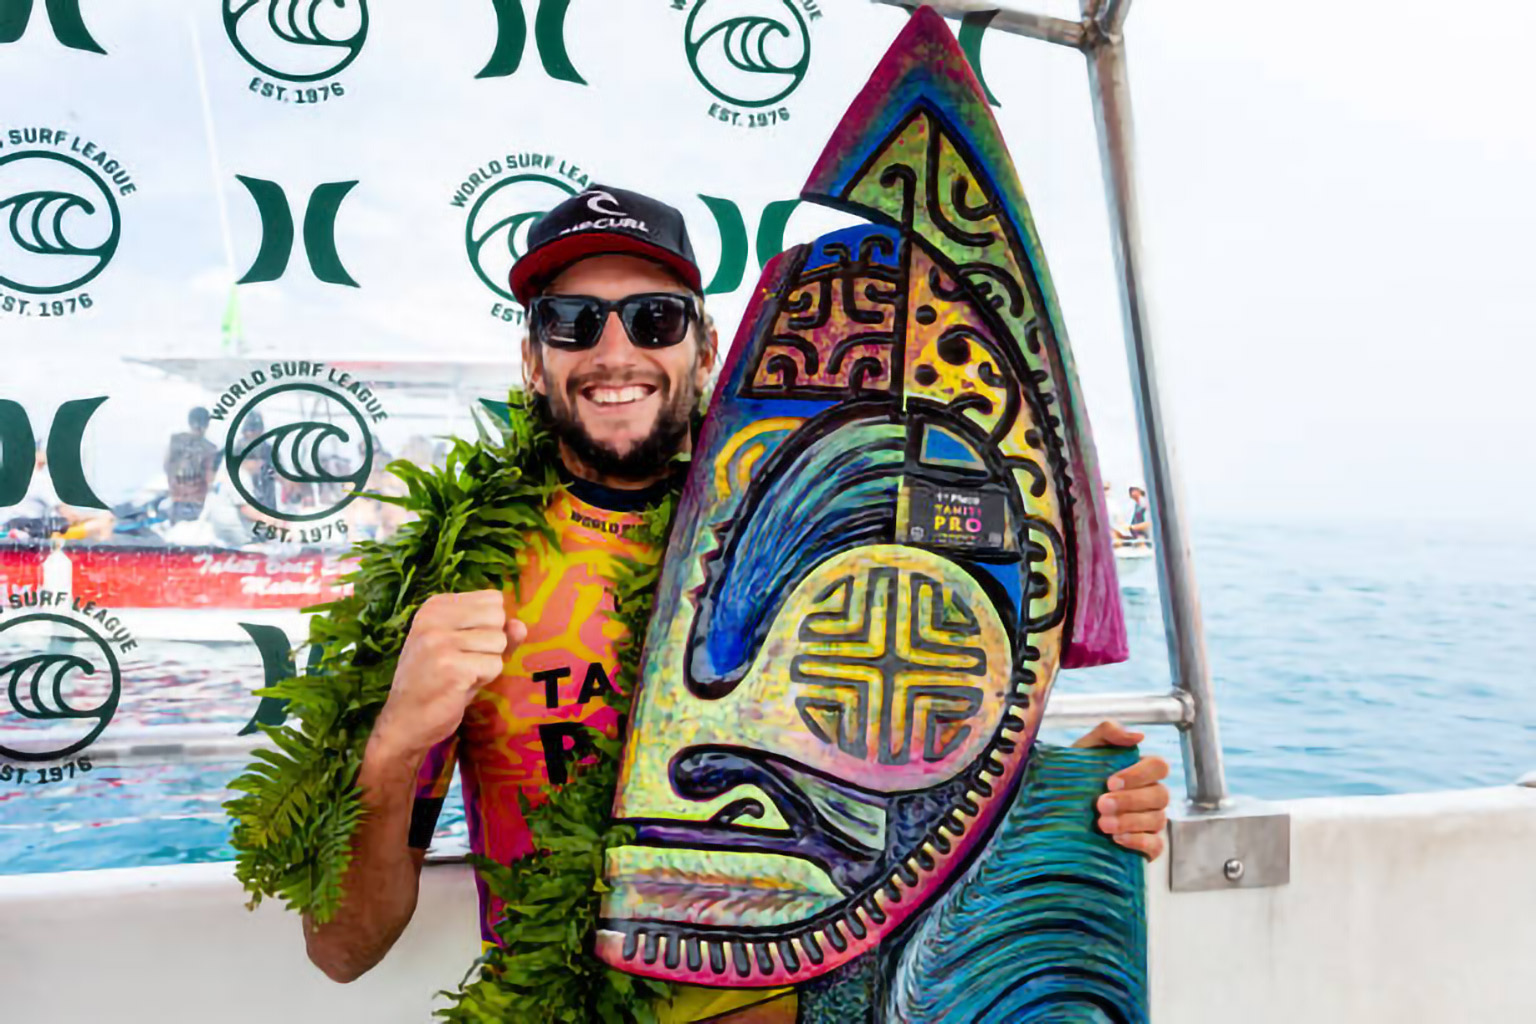 TEAHUPO'O, TAHITI - AUGUST 28: Owen Wright of Australia wins the 2019 Tahiti Pro Teahupo'o after winning the final at Teahupo'o on August 28, 2019 in Tahiti, Franch Polynesia. (Photo by Matt Dunbar/WSL via Getty Images)